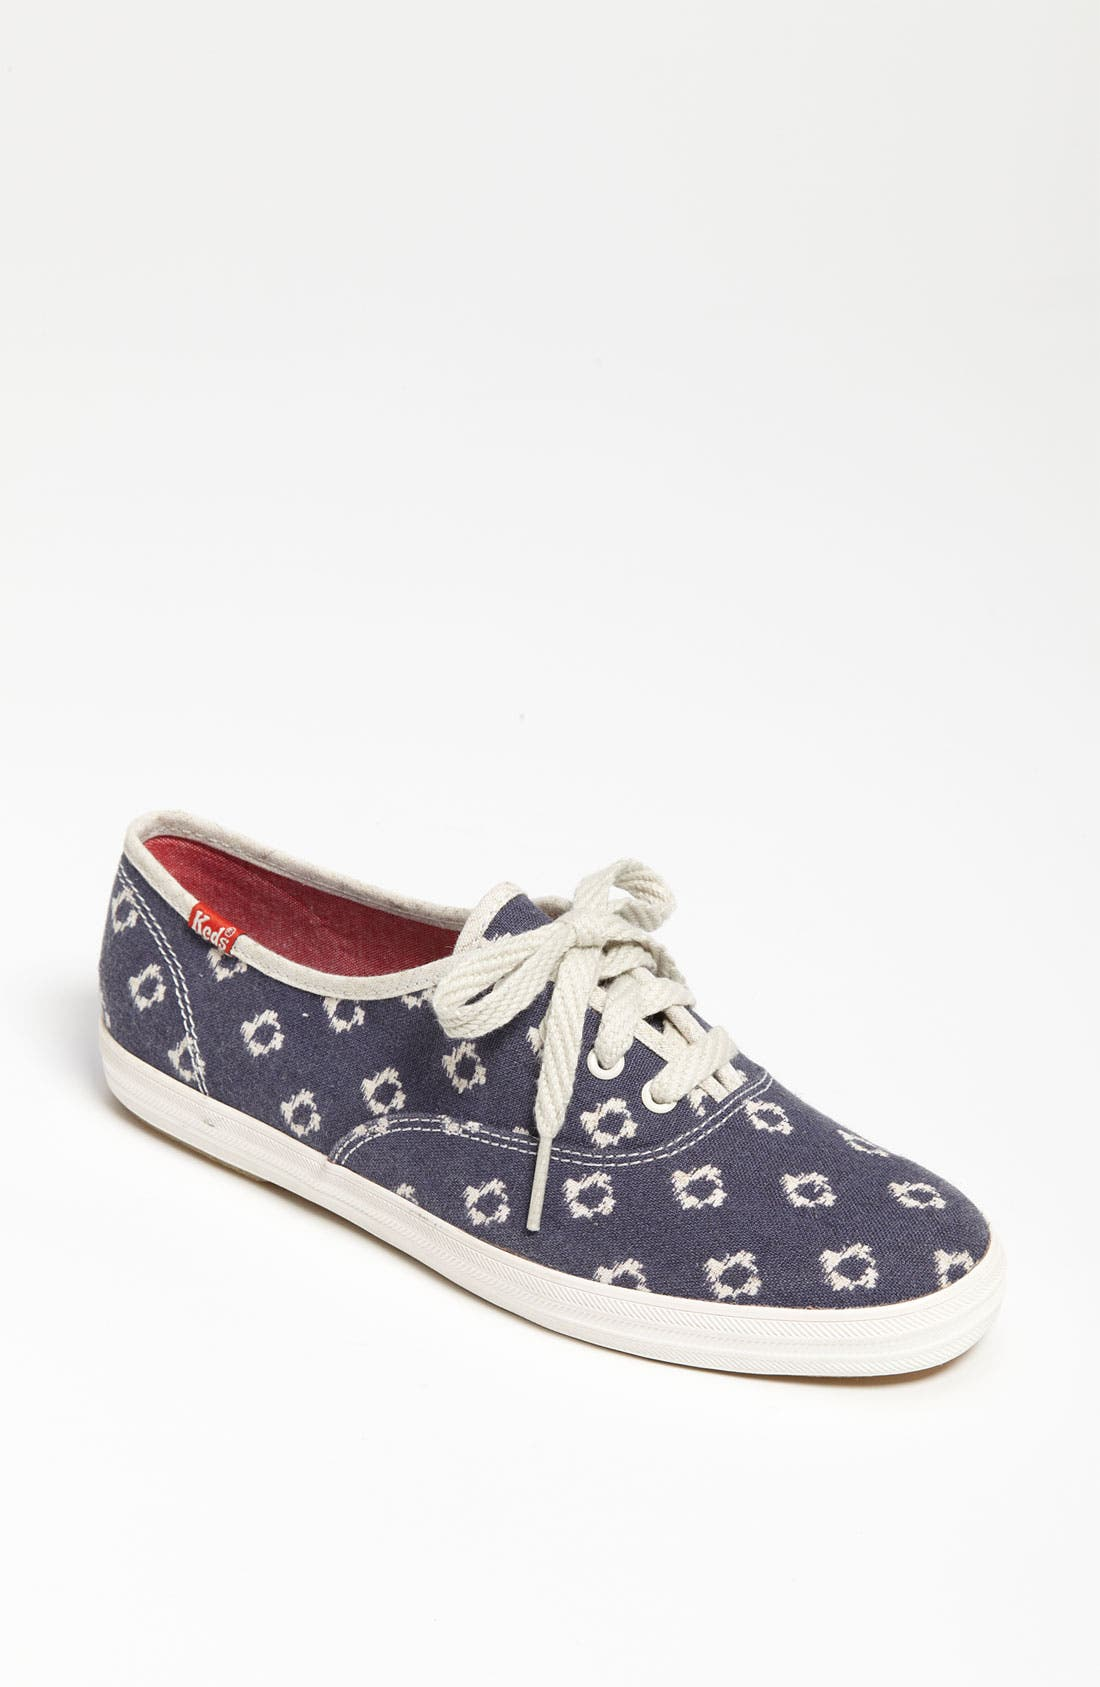 Alternate Image 1 Selected - Keds® 'Champion - Kimono Dot' Sneaker